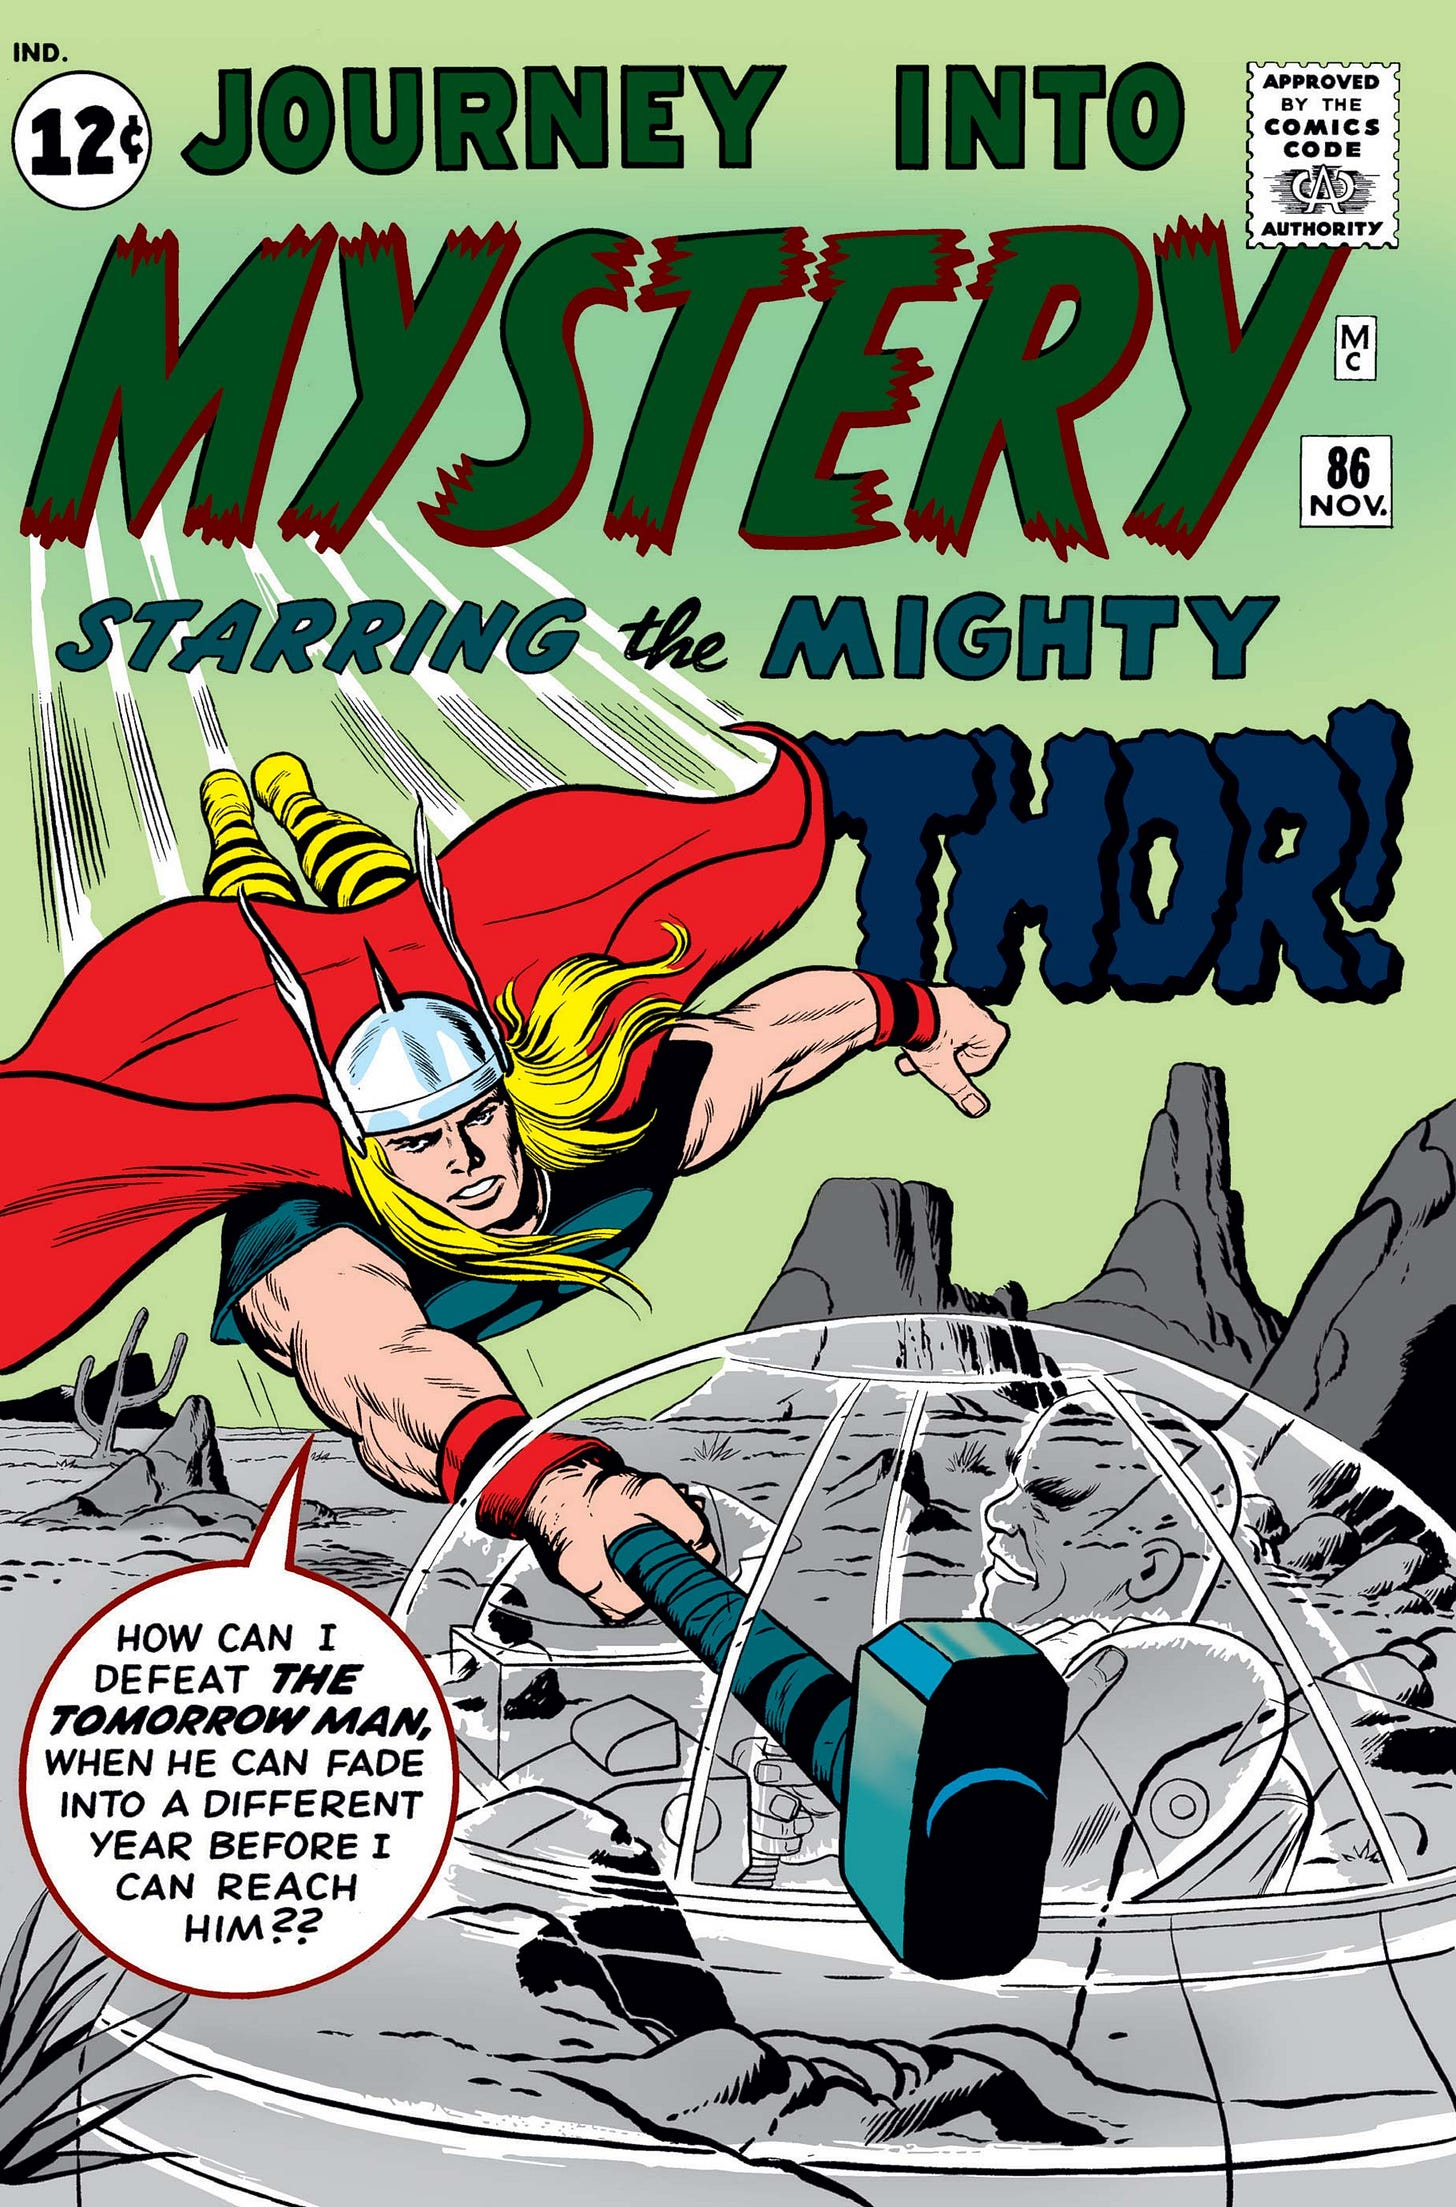 Journey Into Mystery (1952) #86   Comic Issues   Marvel